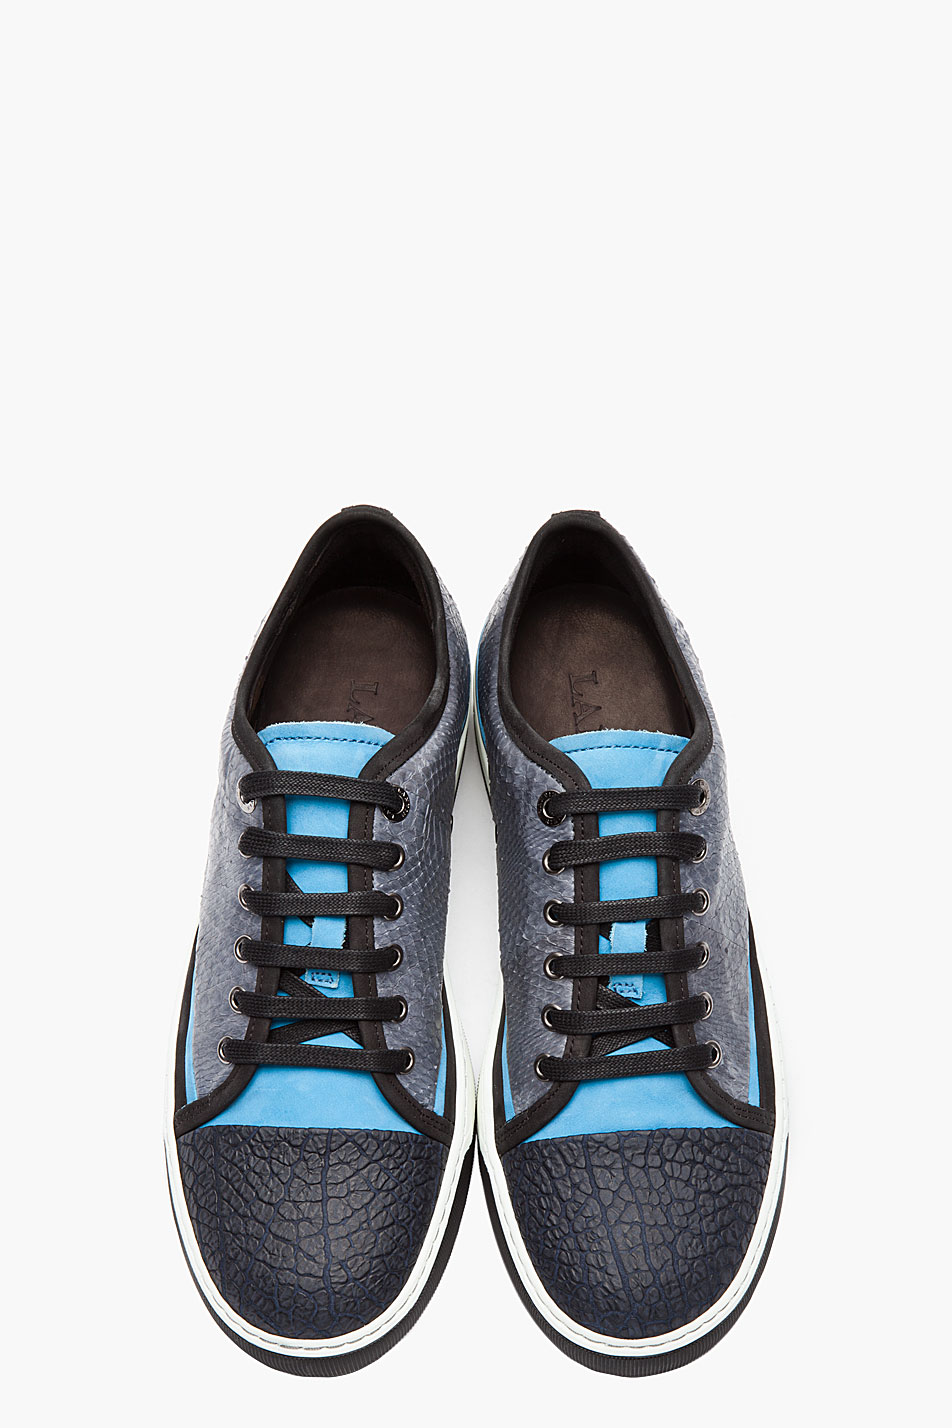 Lyst Lanvin Grey Snakeskin And Nubuck Tennis Shoes In